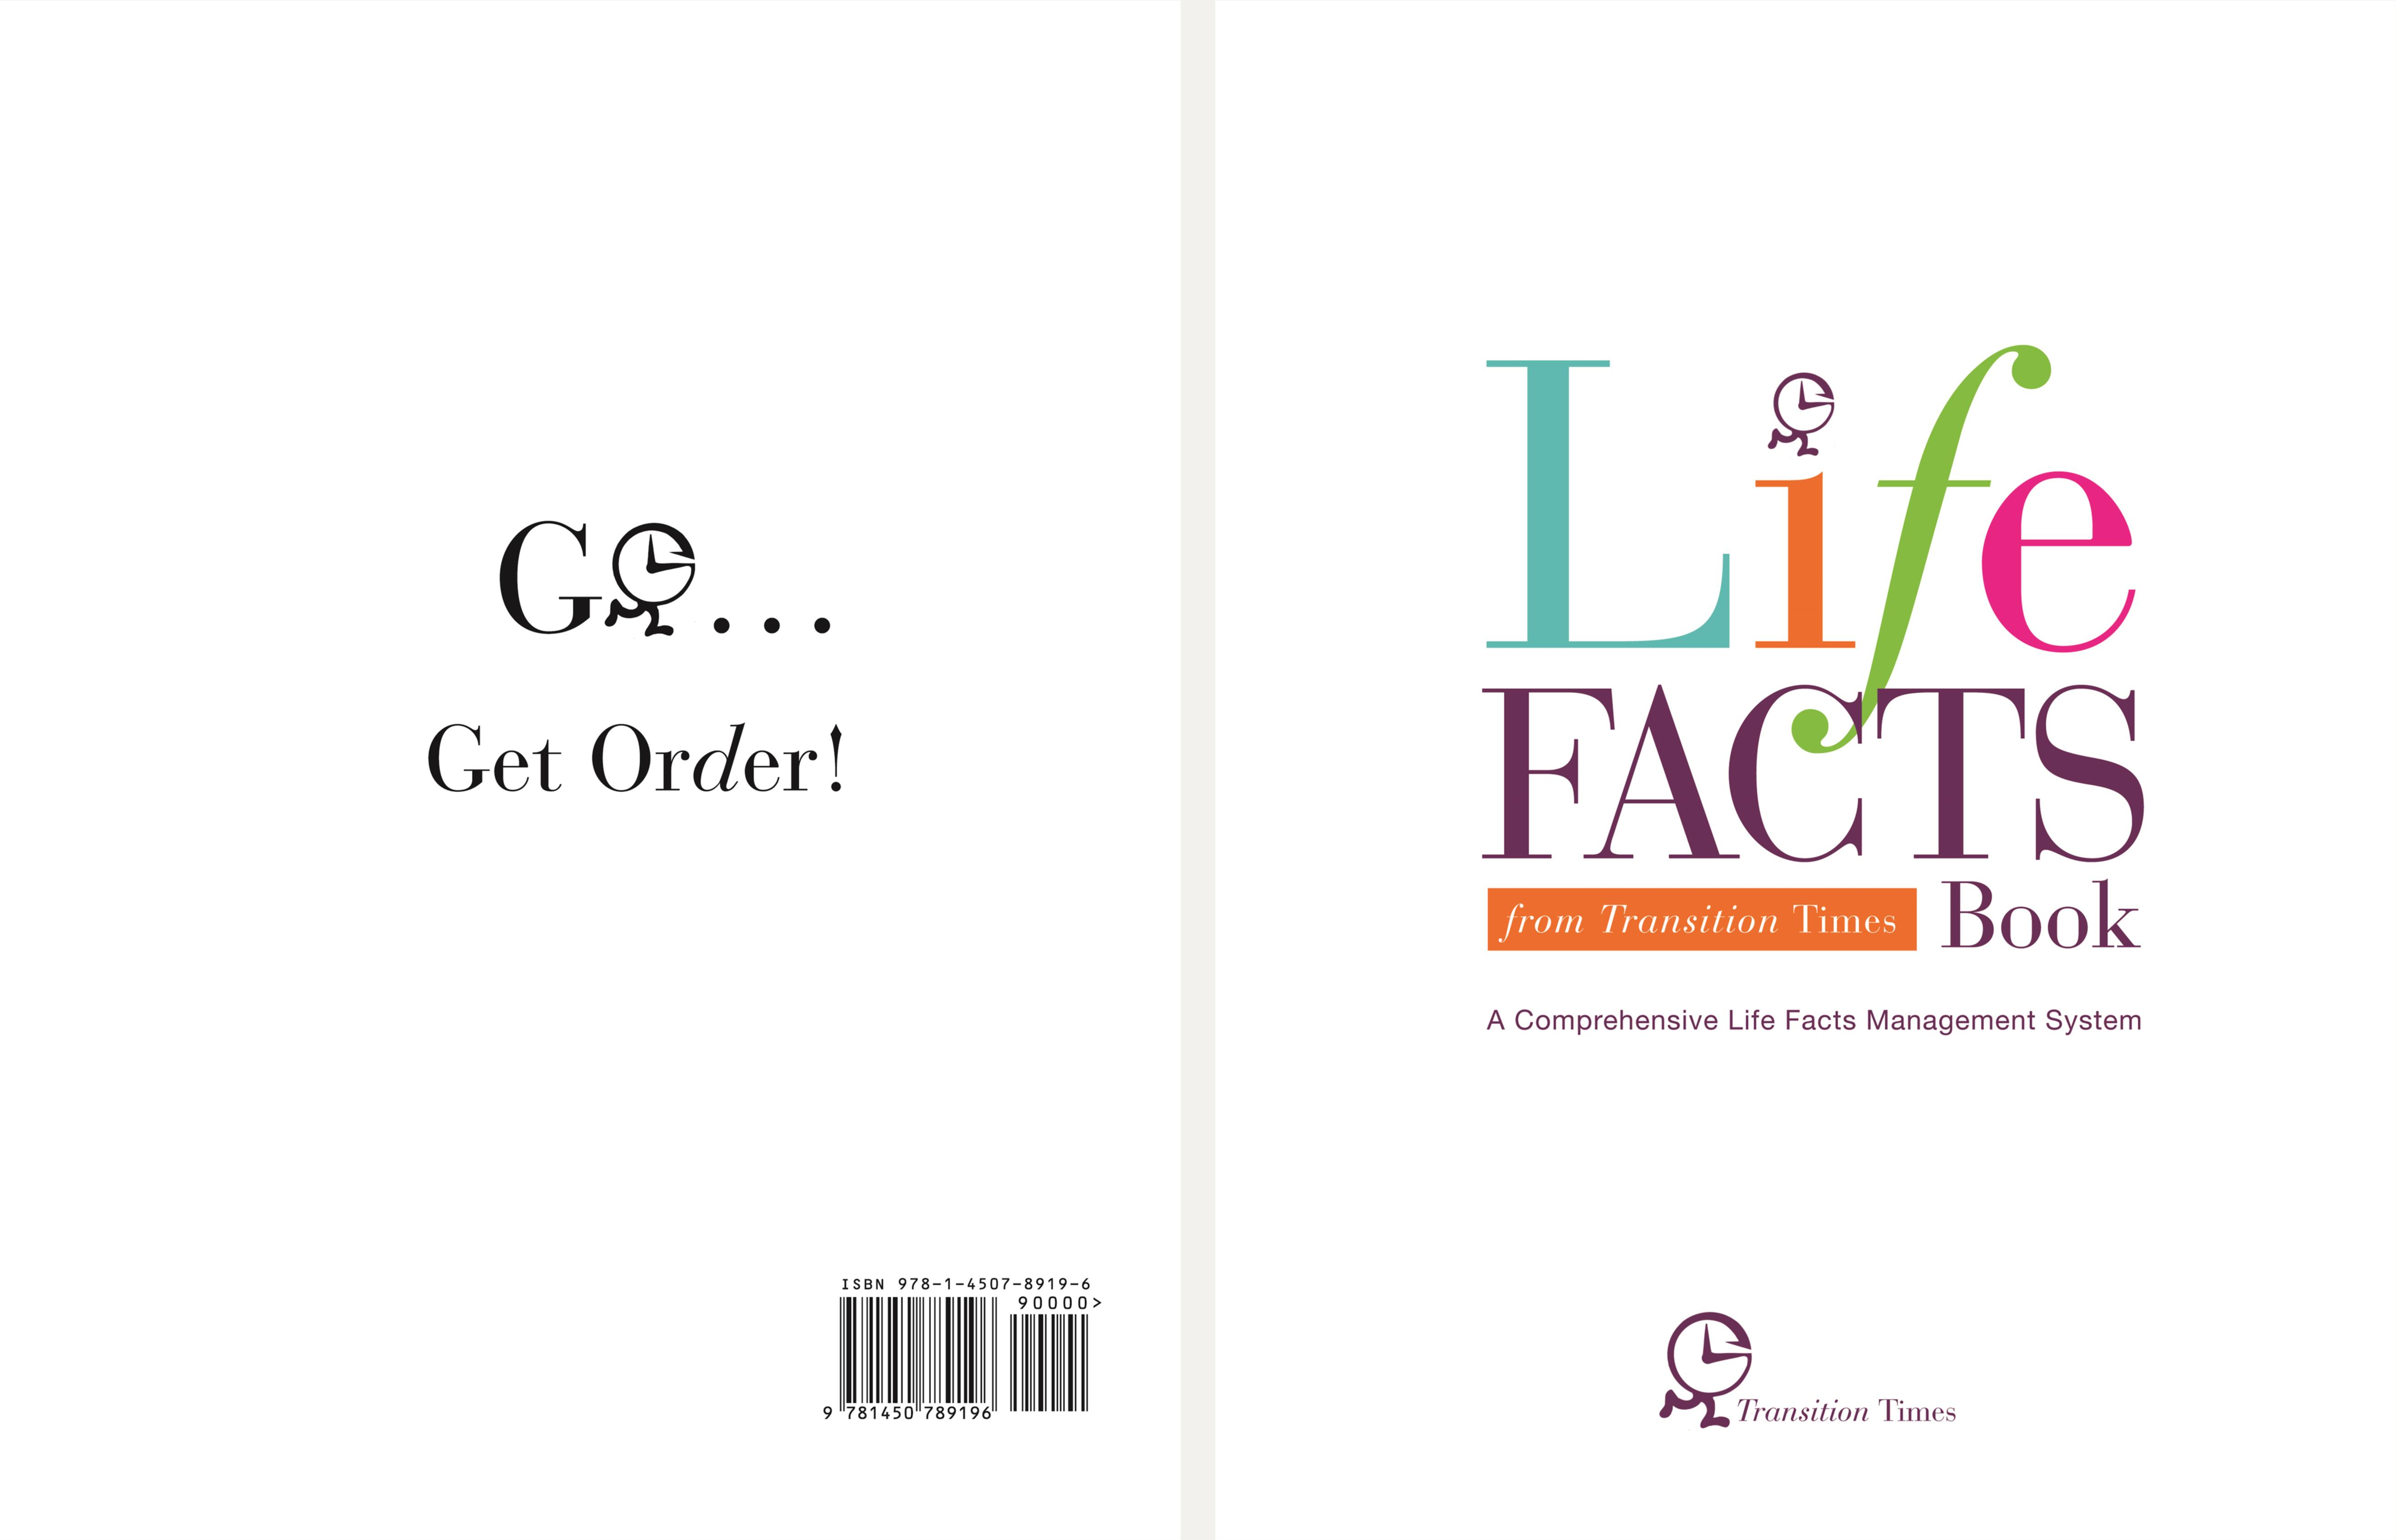 Life Facts Book cover image